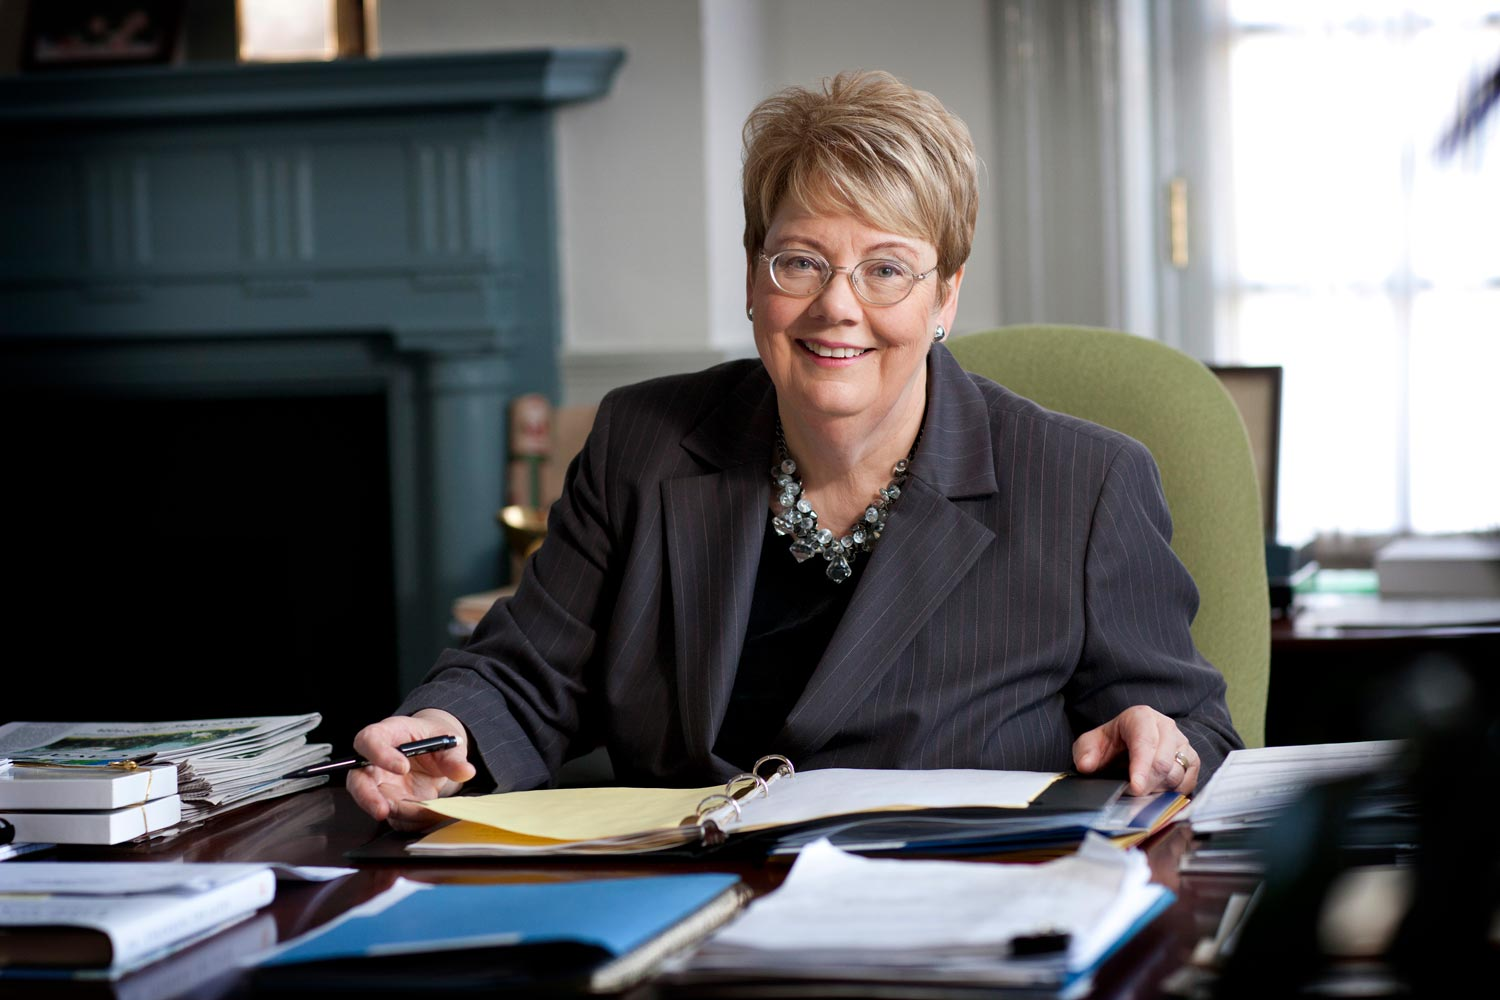 In keeping with University tradition, outgoing President Teresa A. Sullivan will give the formal address at both Final Exercises, to be held May 19 and 20.